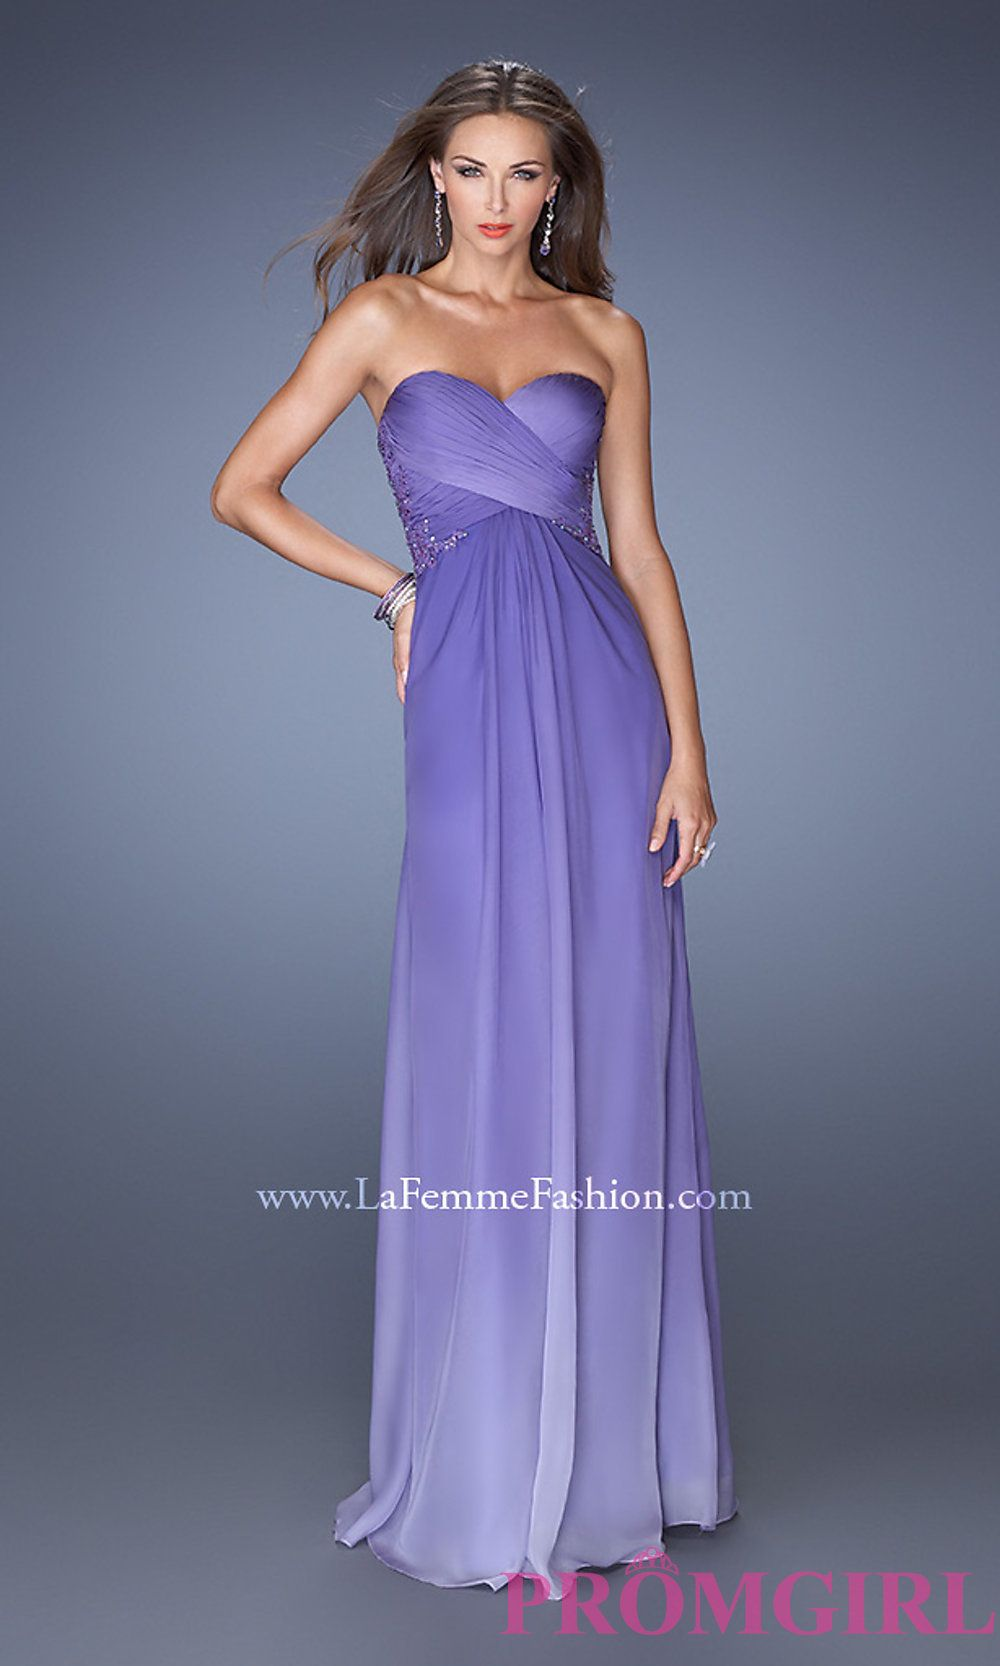 Style lf front image prom dresses pinterest long prom